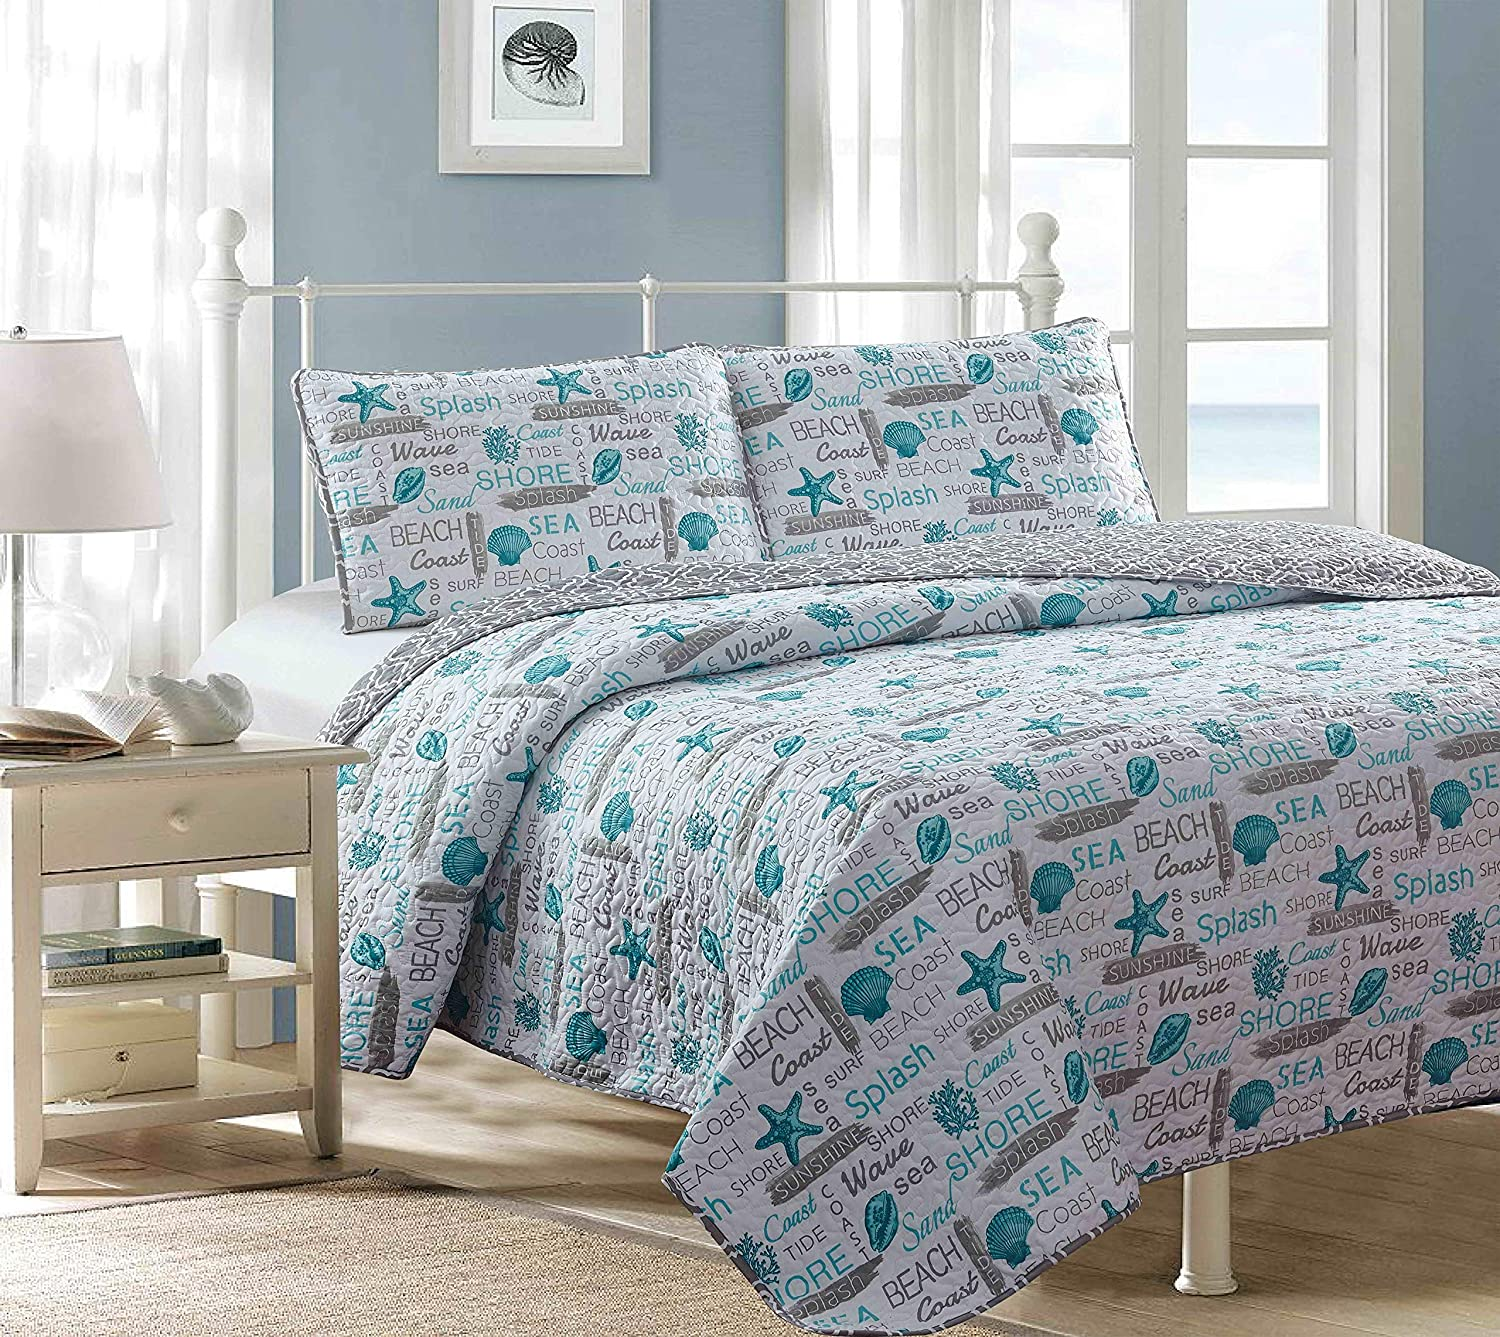 Sweet Home Collection 3 Piece Printed Quilt Set Decorative Unique Stylish Designs Soft and Luxurious Bedding with 2 Shams King Barbados-Linen